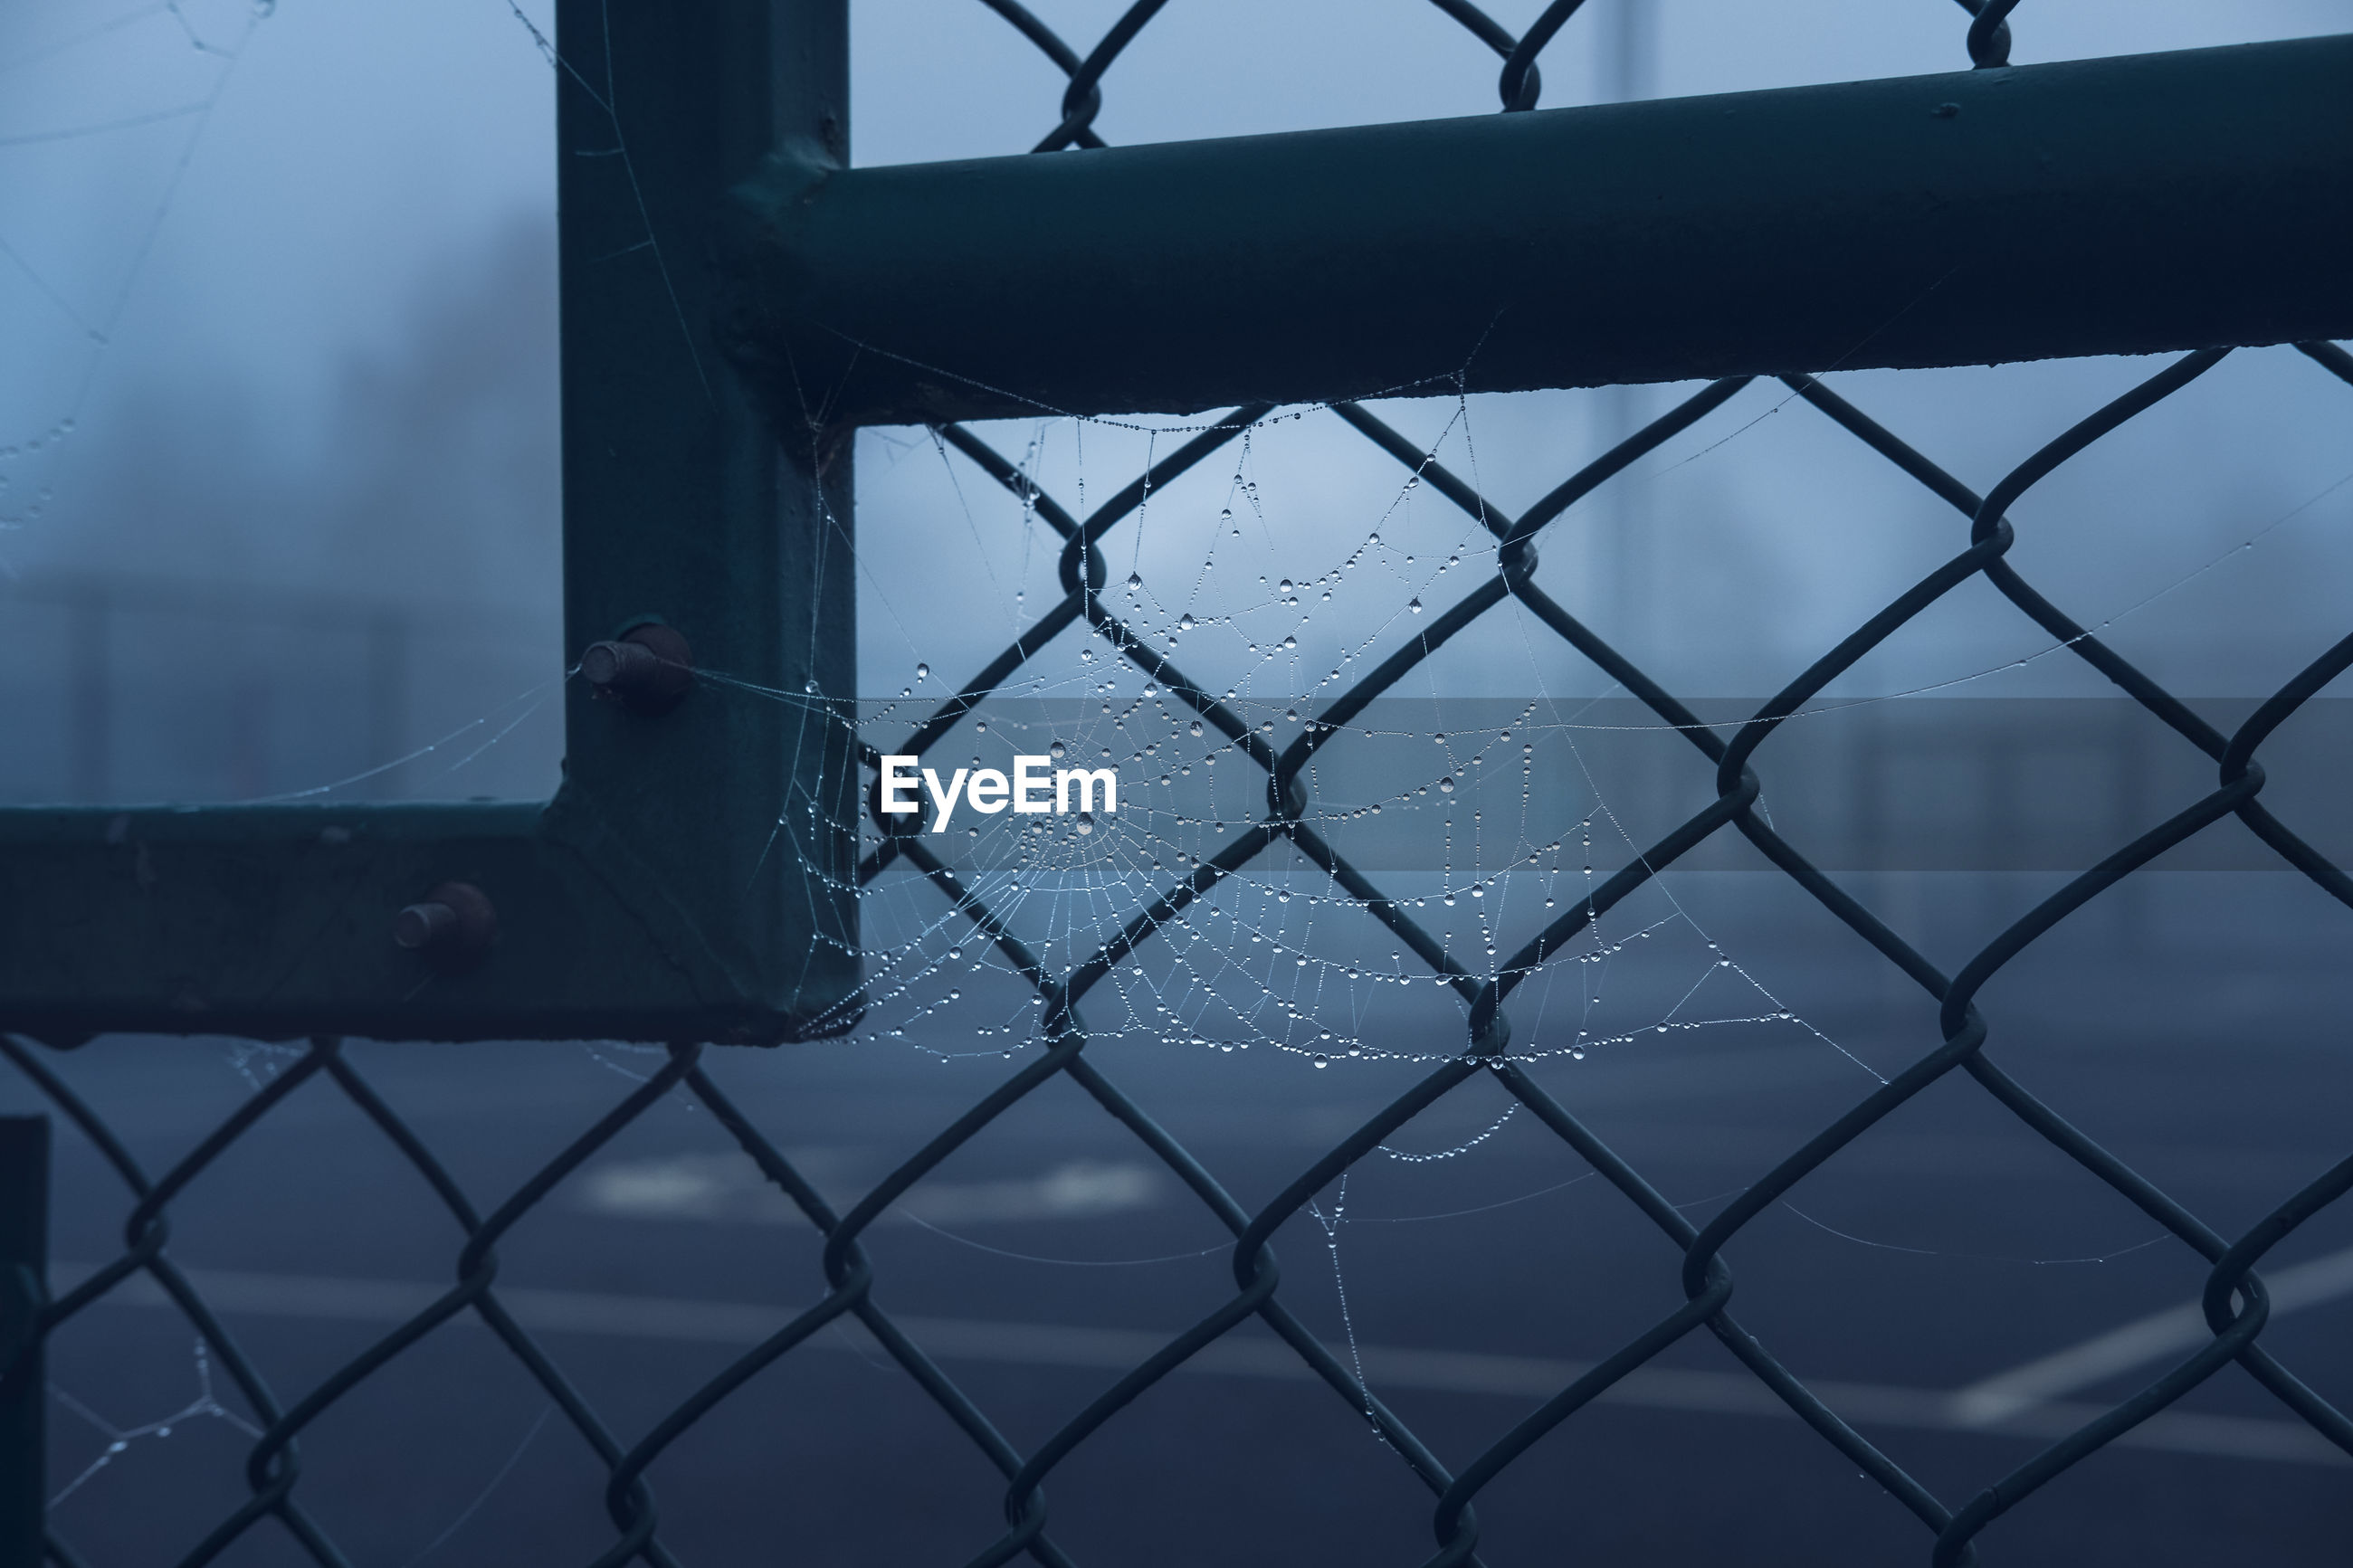 CLOSE-UP OF CHAINLINK FENCE AGAINST BLUE SKY DURING RAINY DAY